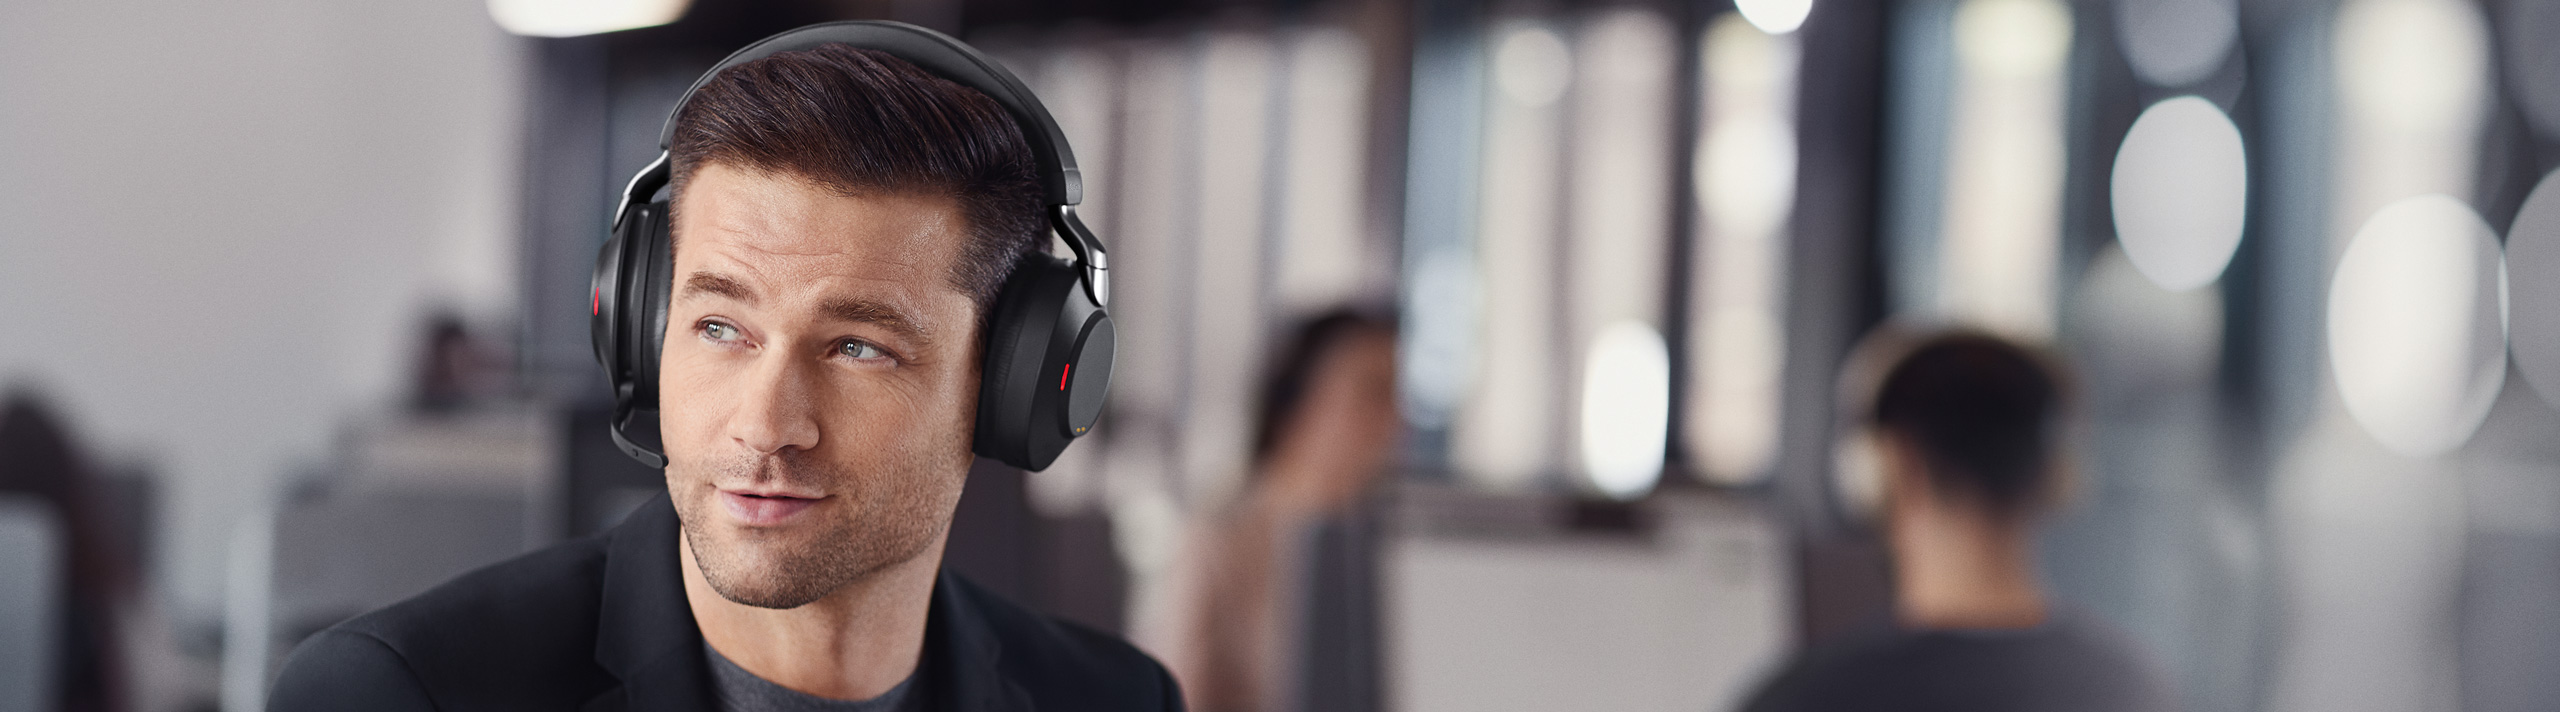 Launch of the Evolve2 headset range